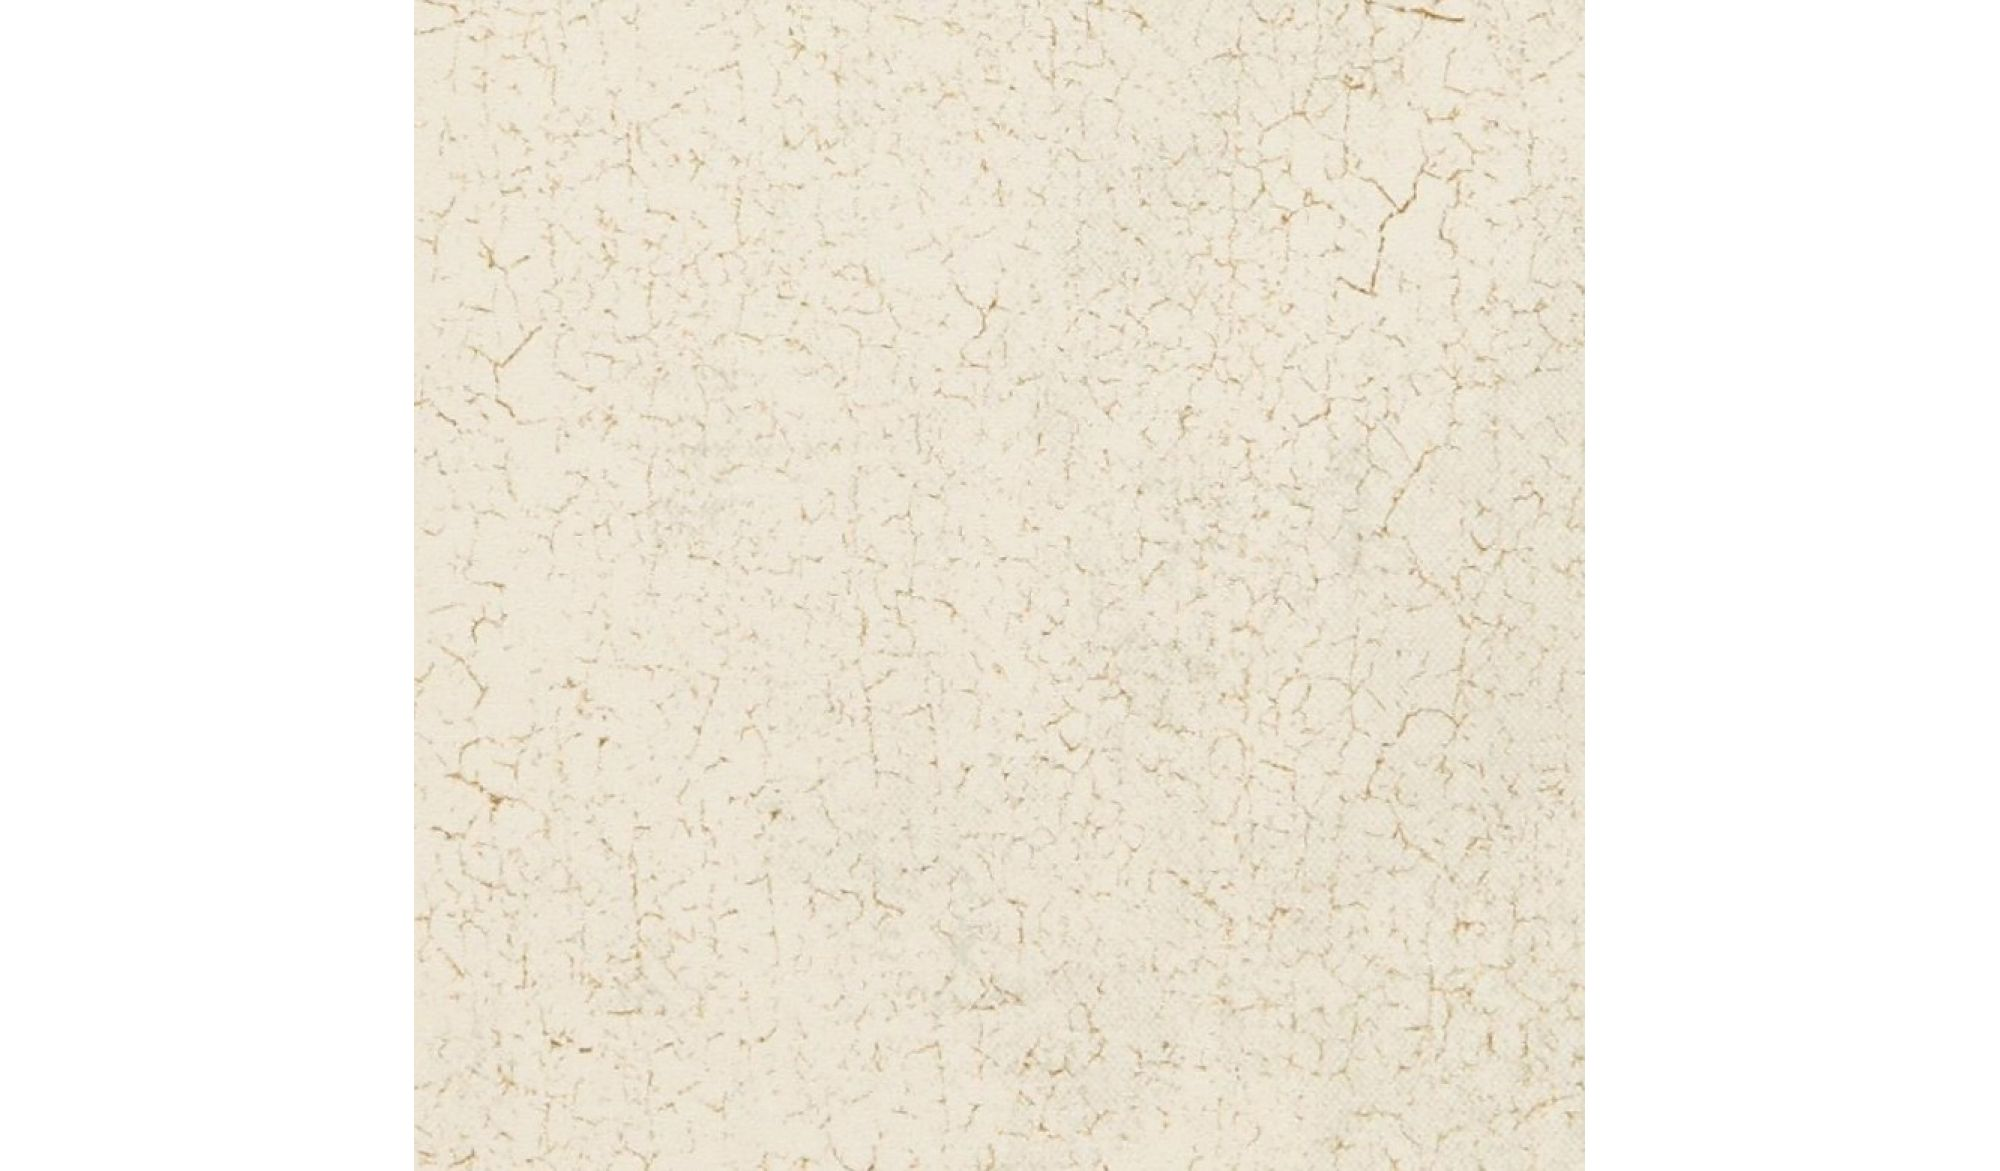 TAPETA VITRIFY Almond-55 - Wallpaper alt_tapety_kolor_almond-55 Melange - Colour